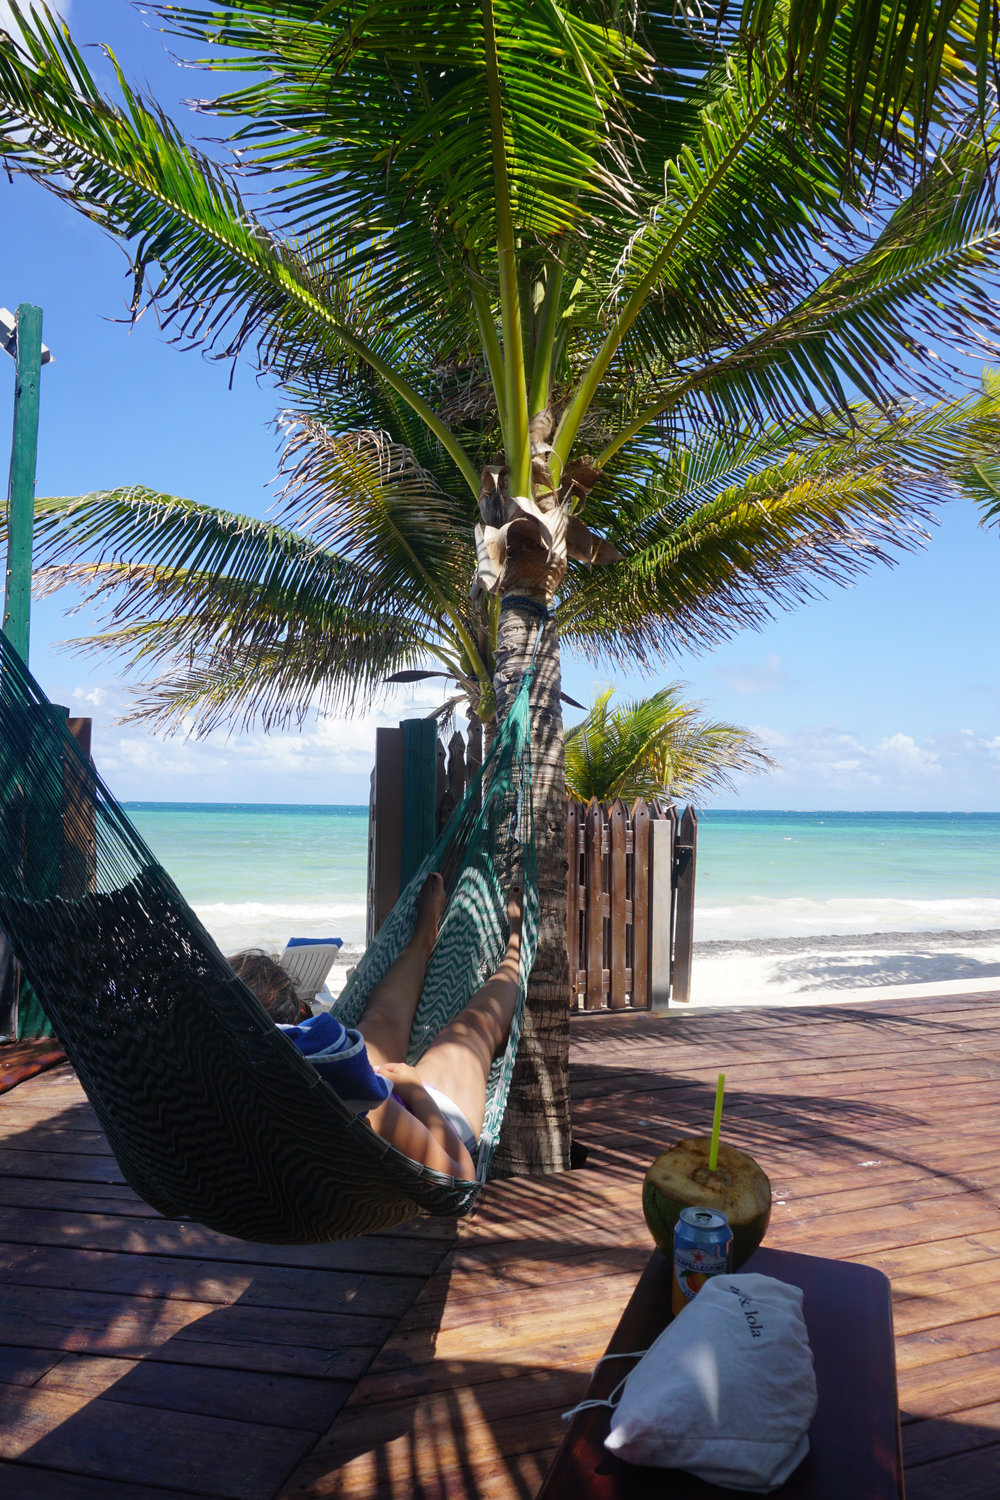 One of our DOWU guests enjoying a beautiful day in Puerto Morelos.